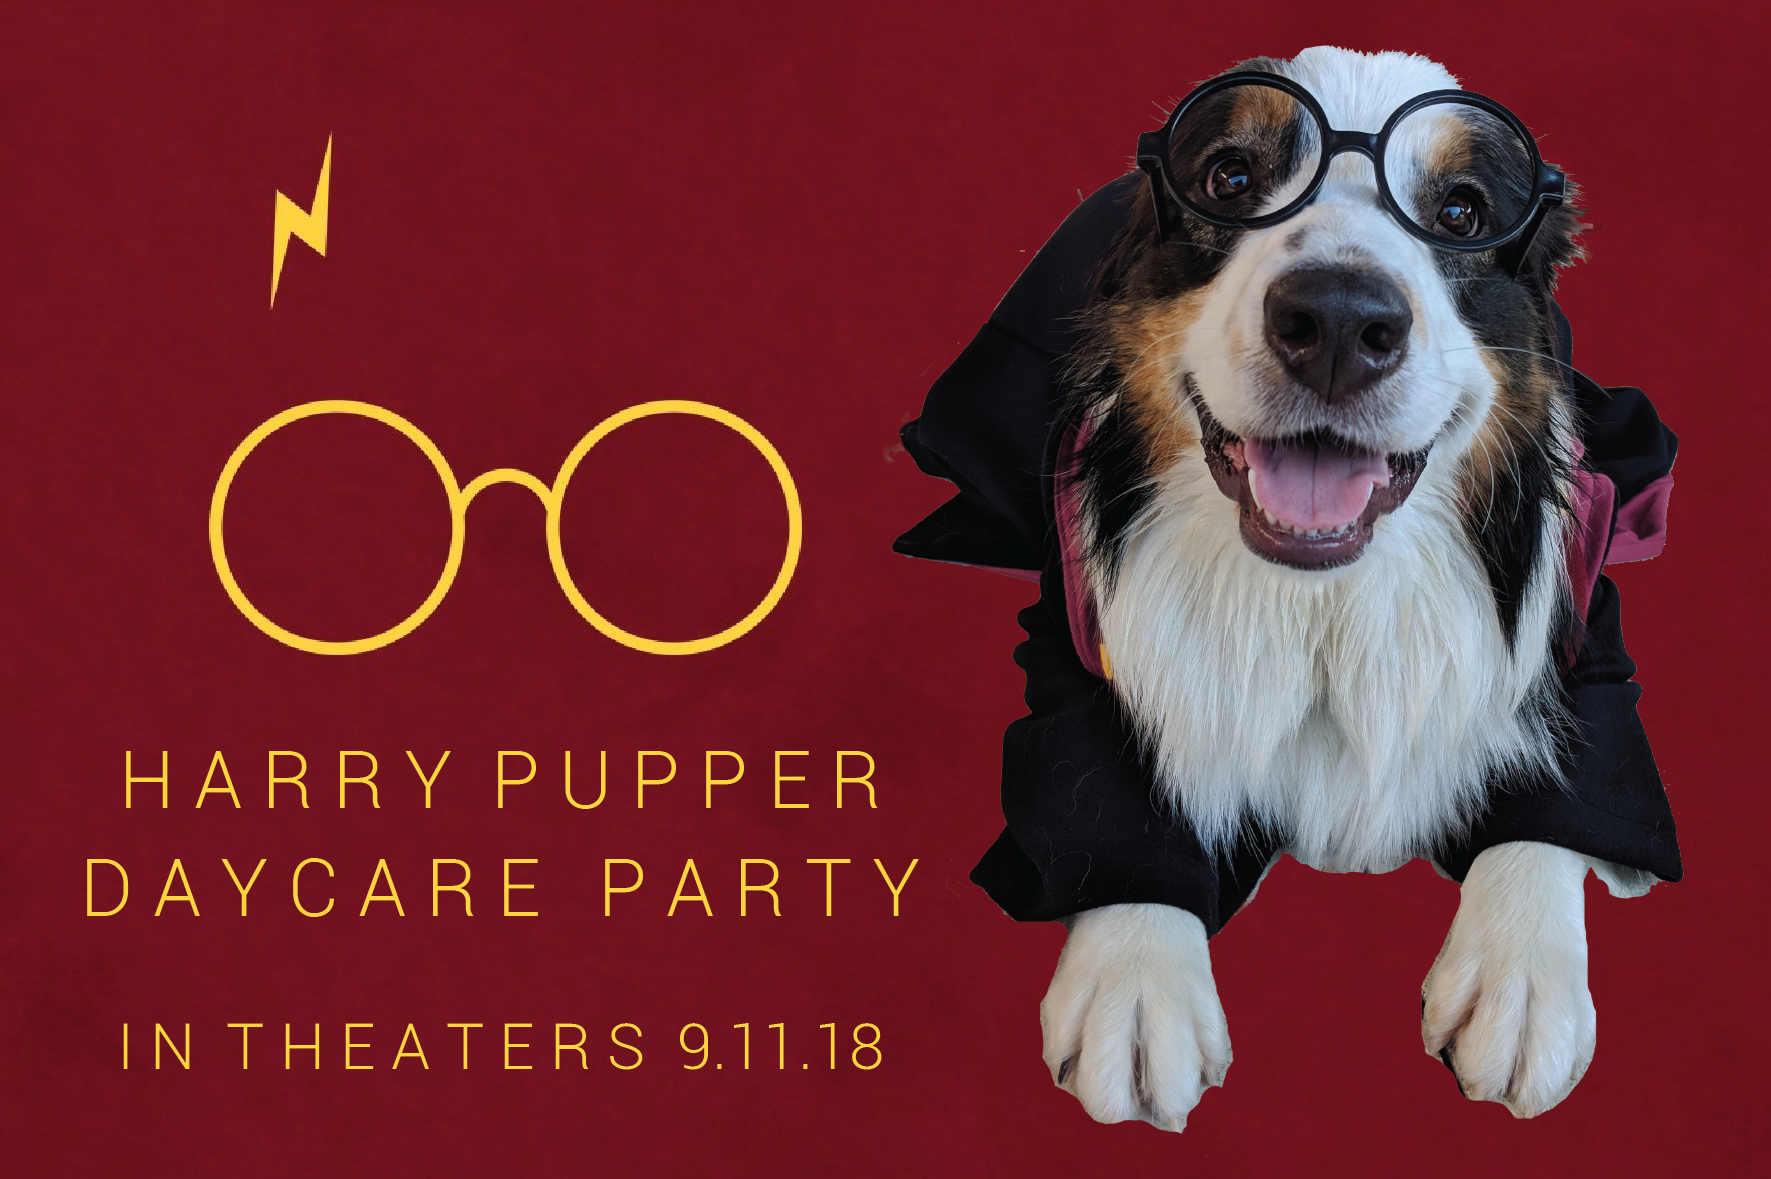 Doggy Day Care Party, Harry Potter